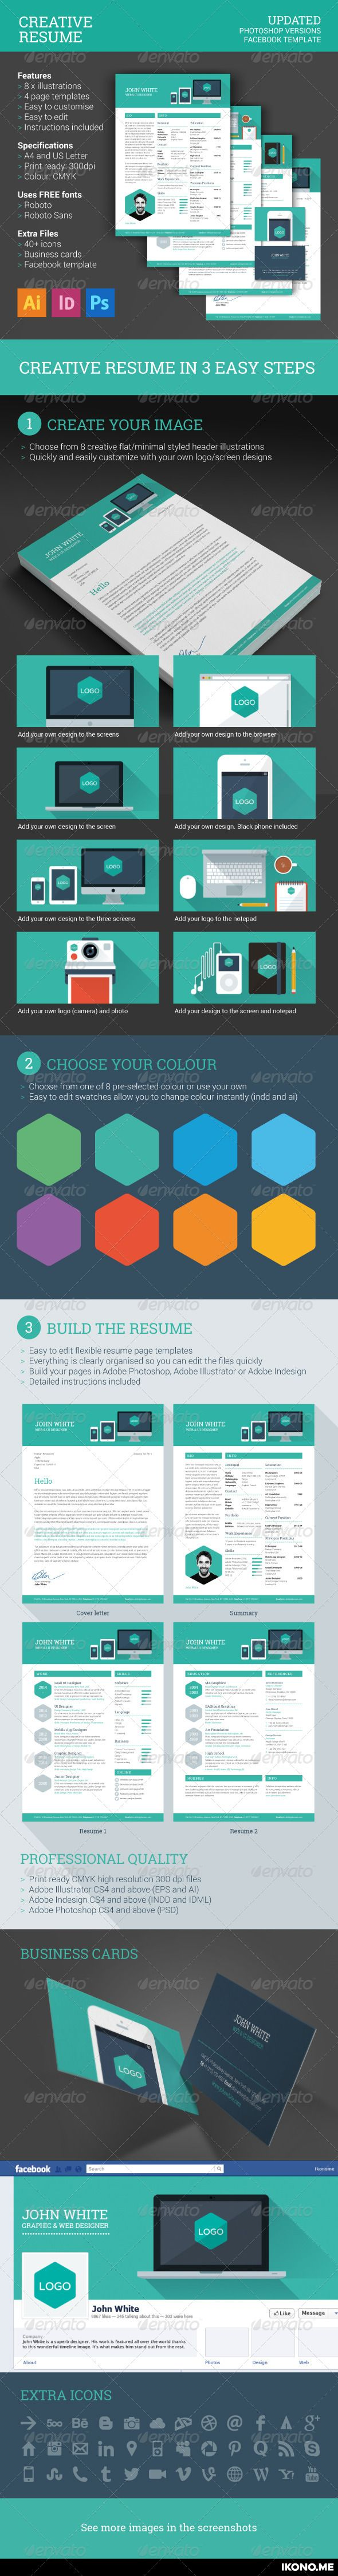 Best Creative Resume Template Images By IkonoMe On